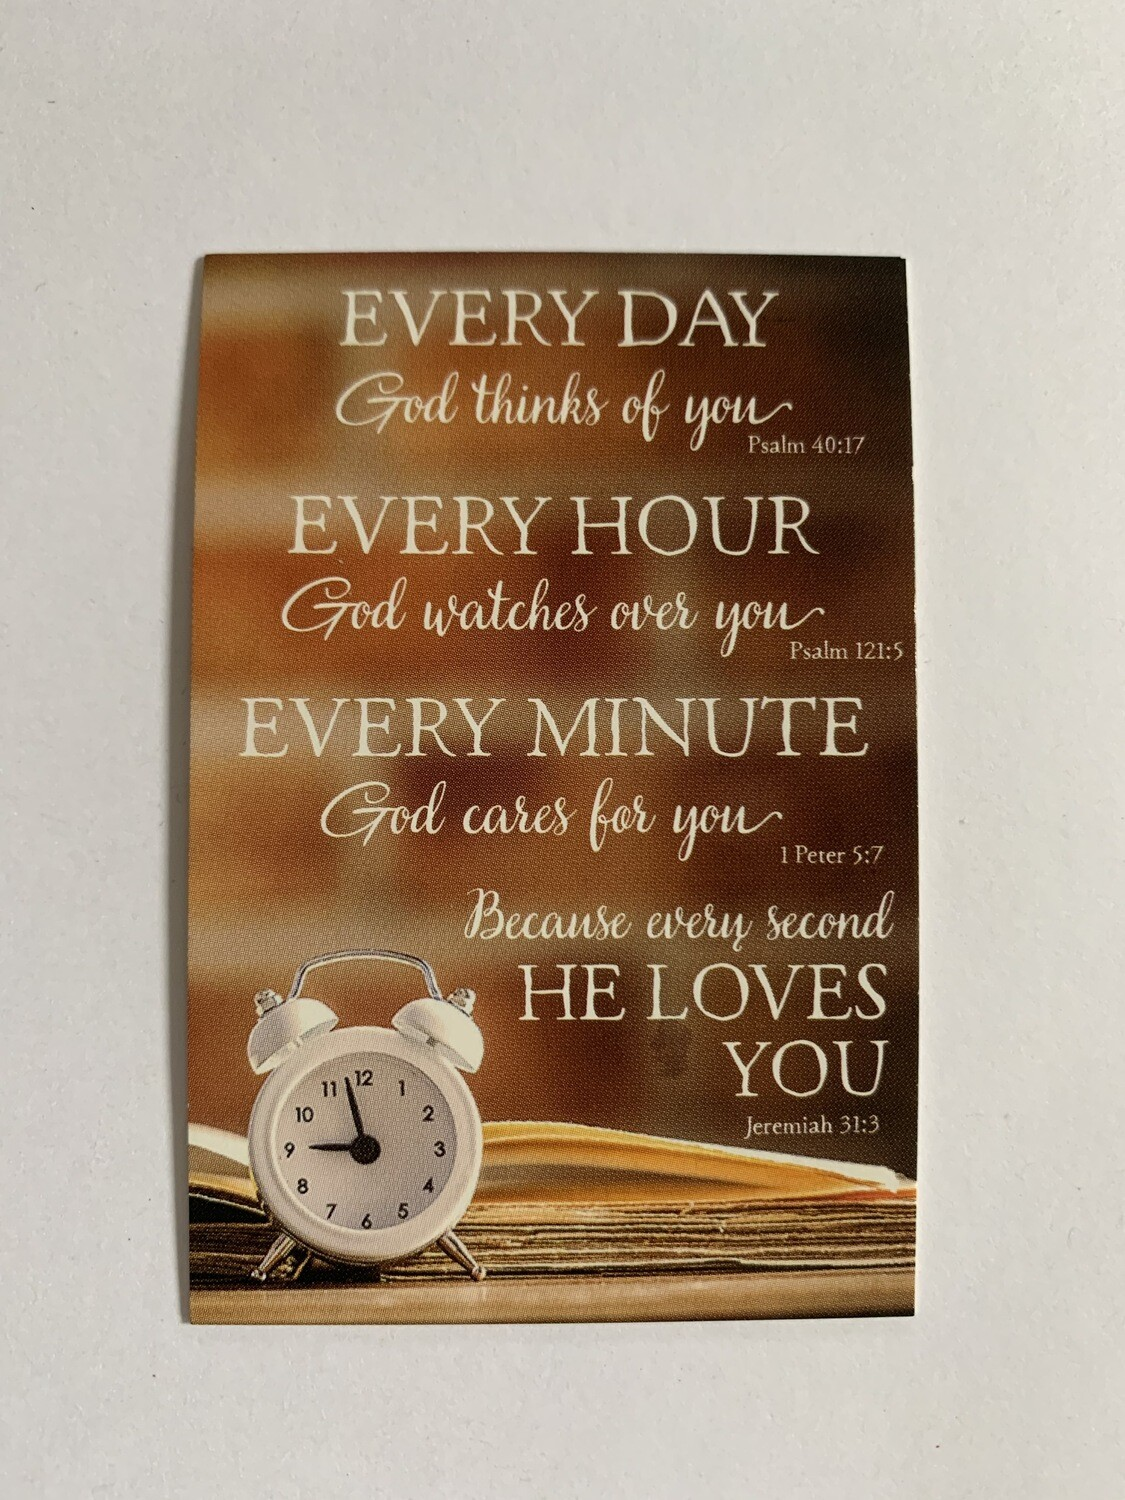 Pass It On - Everyday Every Hour Every Minute